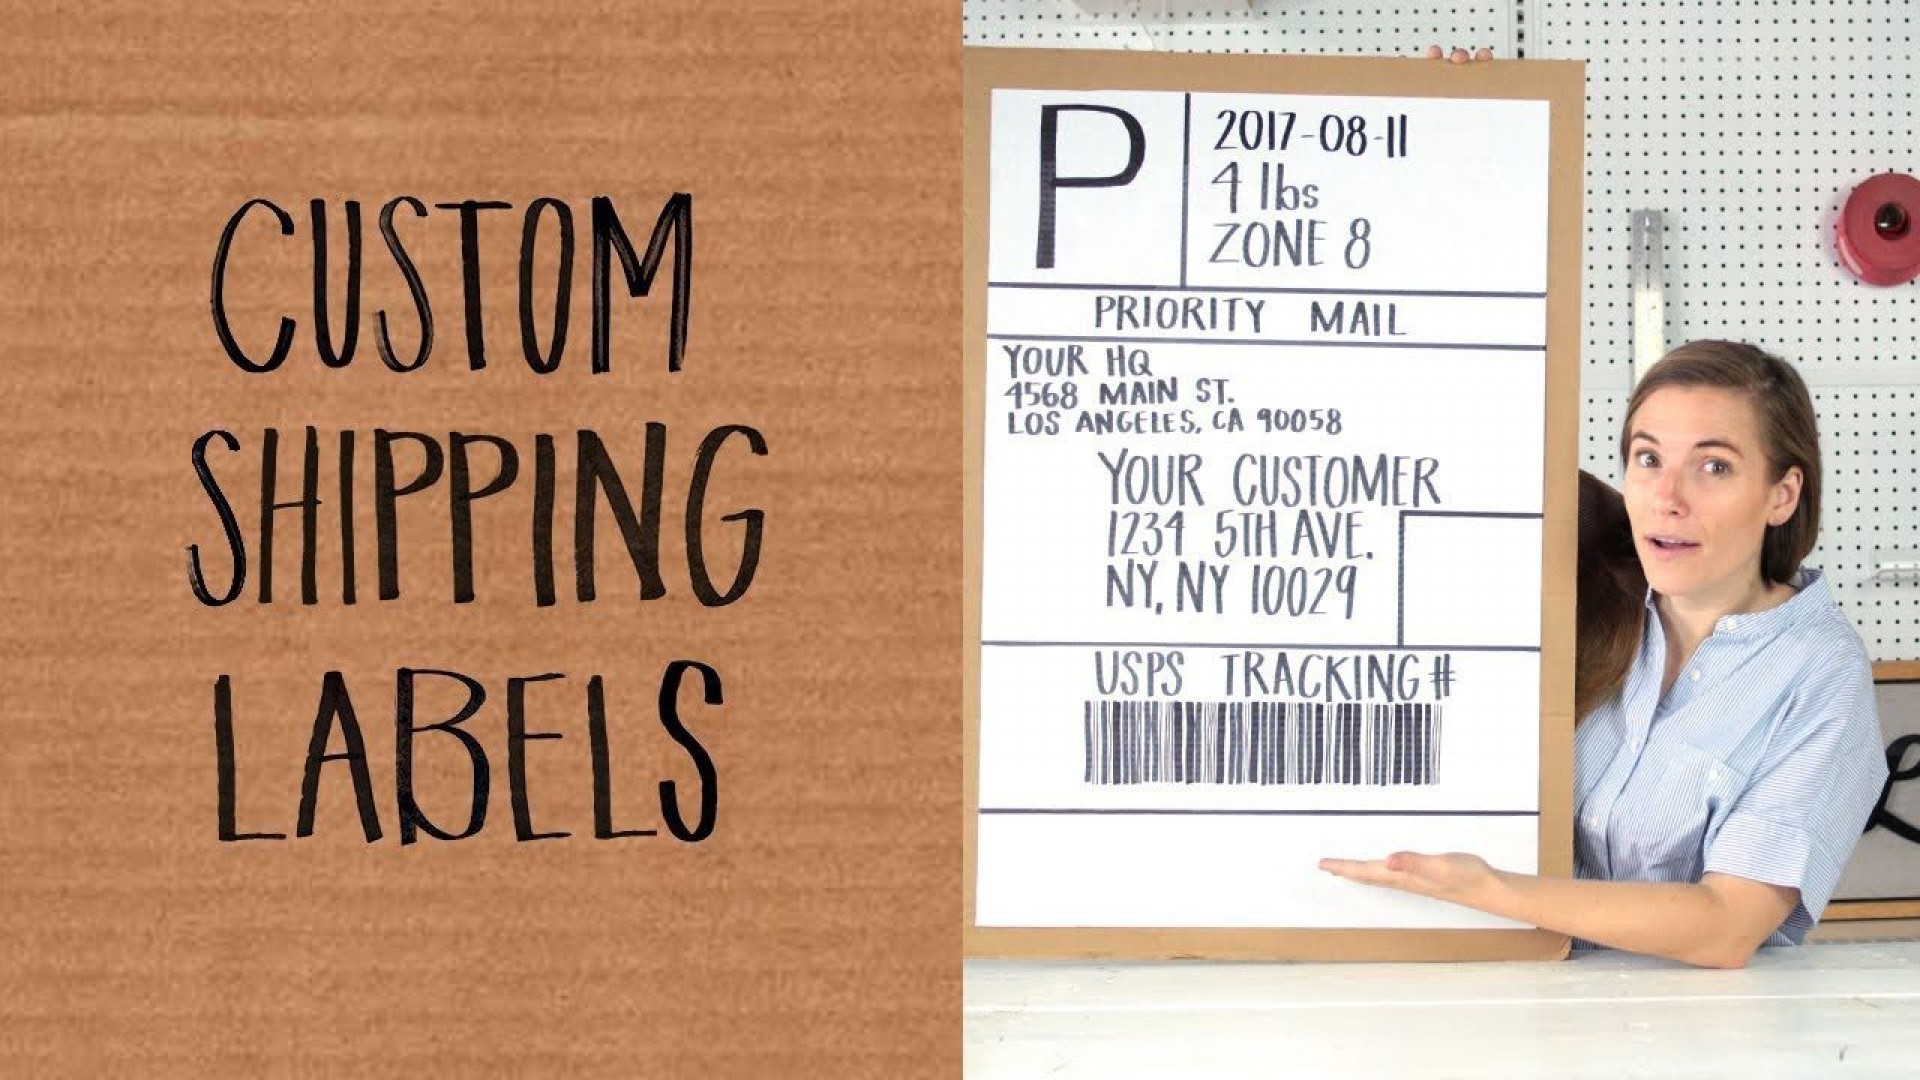 003 Shocking Cute Shipping Label Template Free High Resolution 1920